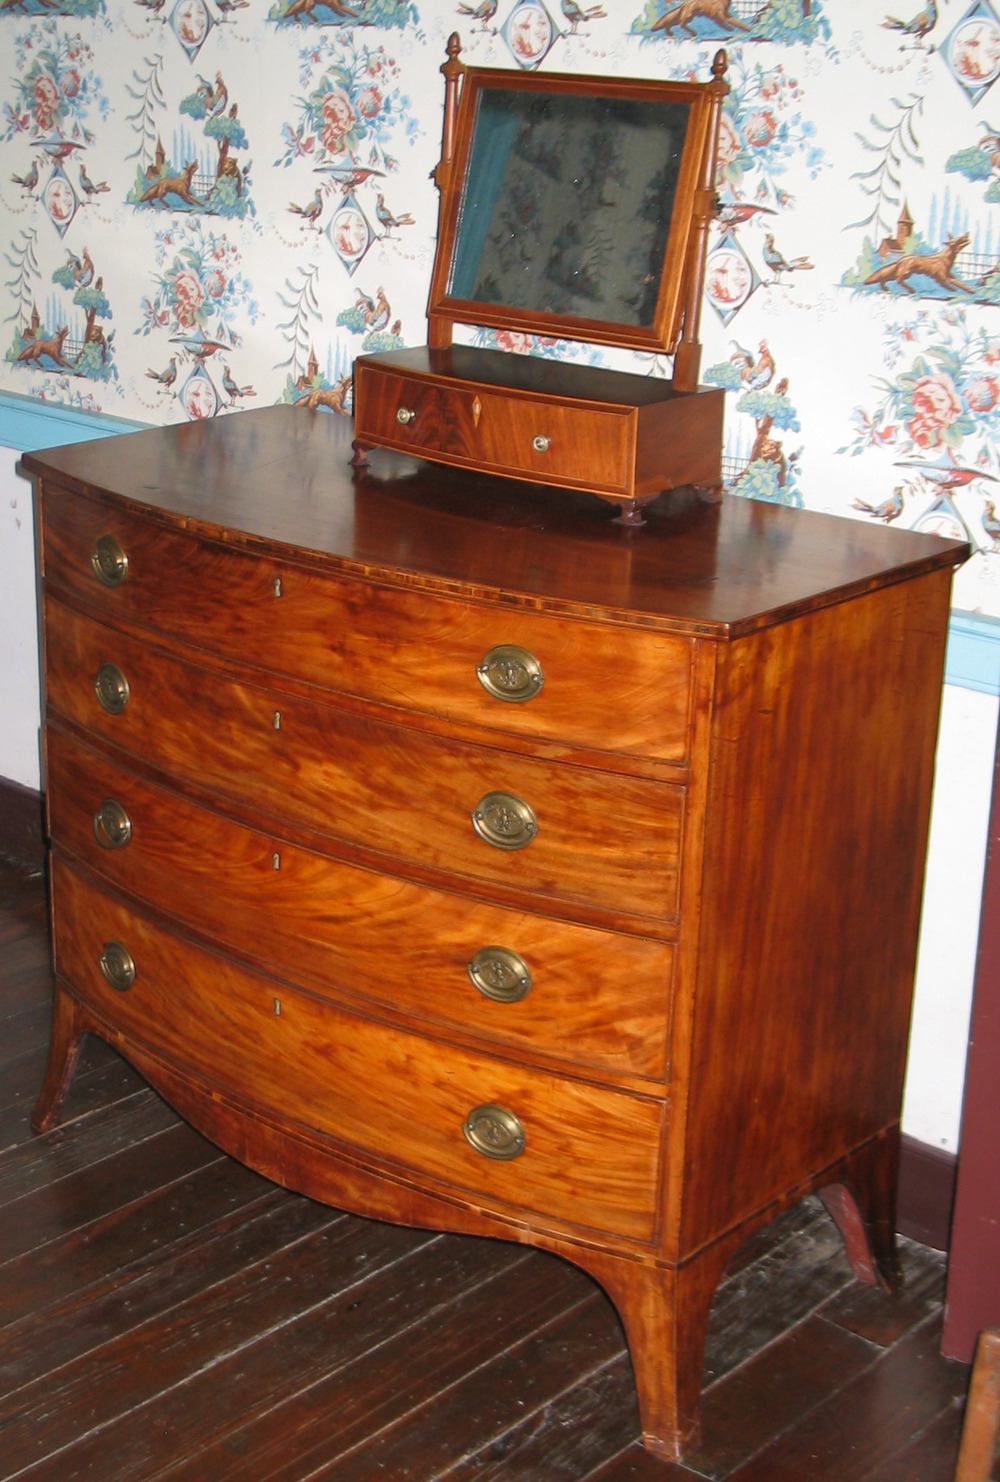 Best Furniture Polish for Antiques Inspirational Spring Cleaning Basic Care and Maintenance for Antique